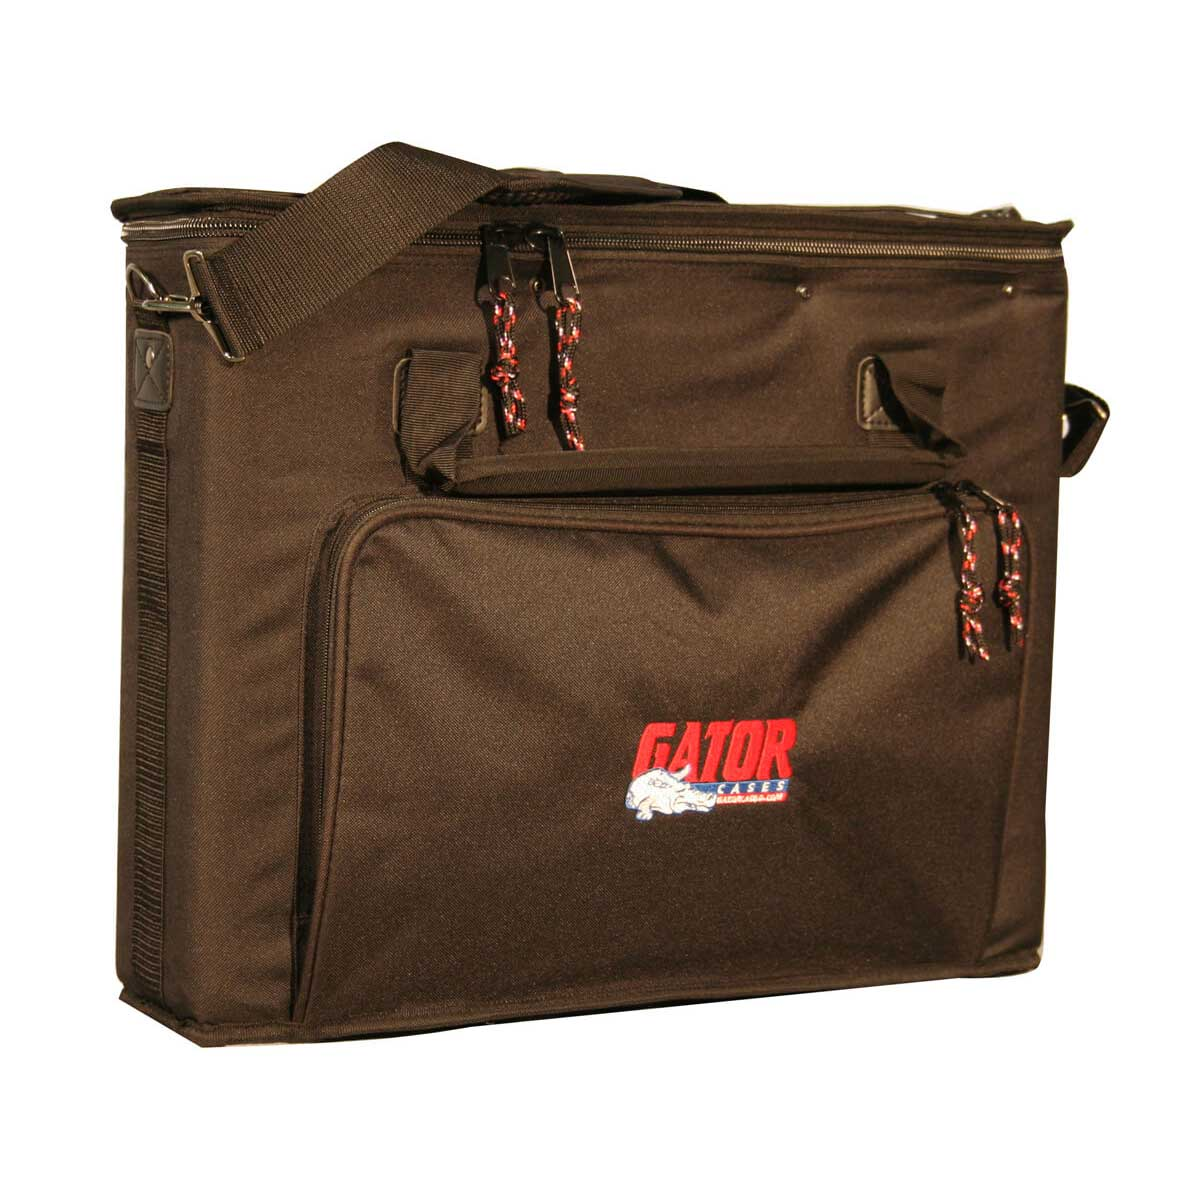 Gator GRB-2U Rack Bag 2U